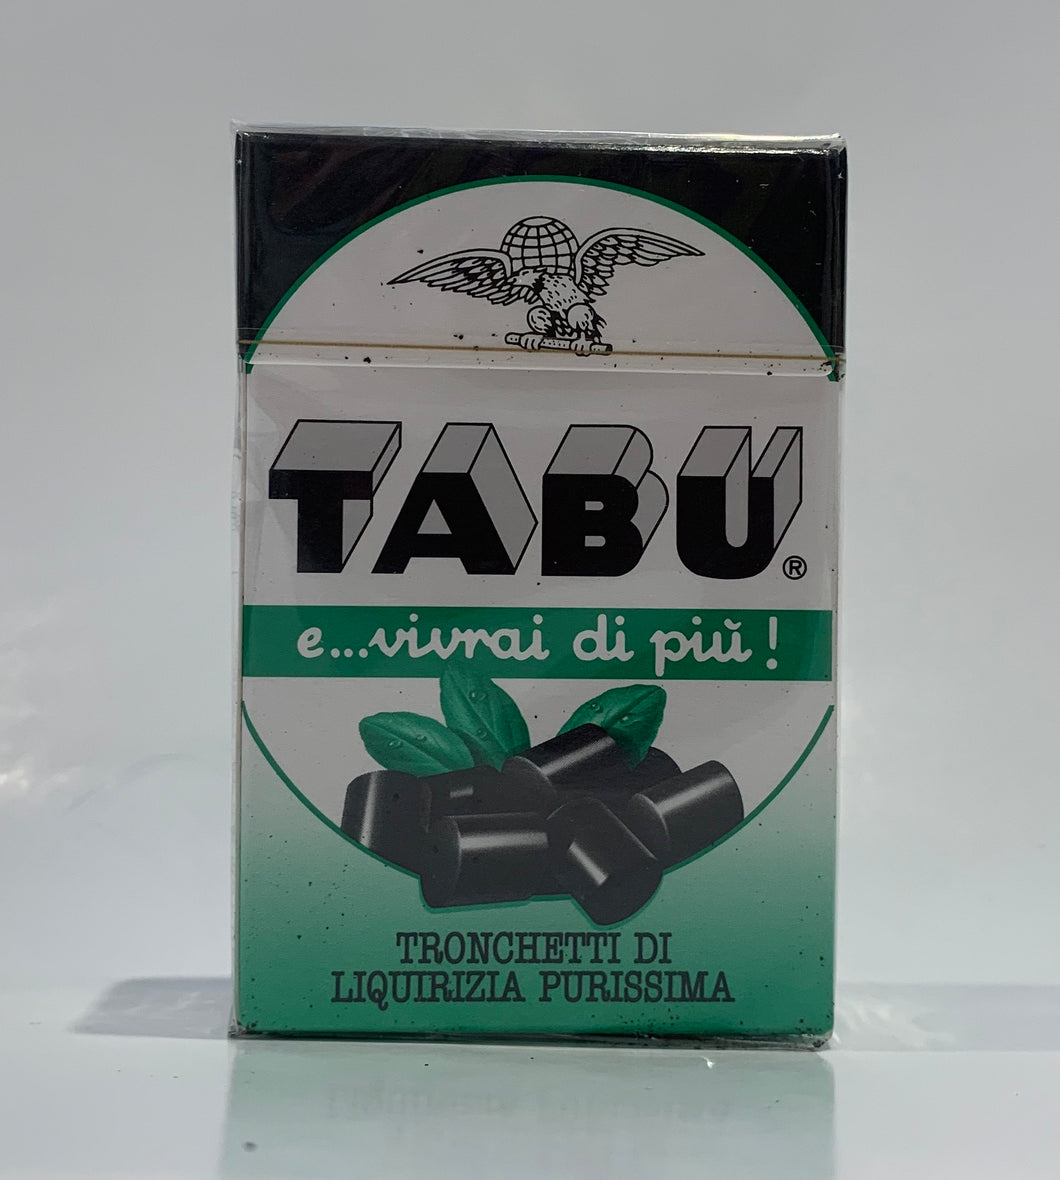 Tabu - Liquirizia (in a box) - 30g (1.1 oz)